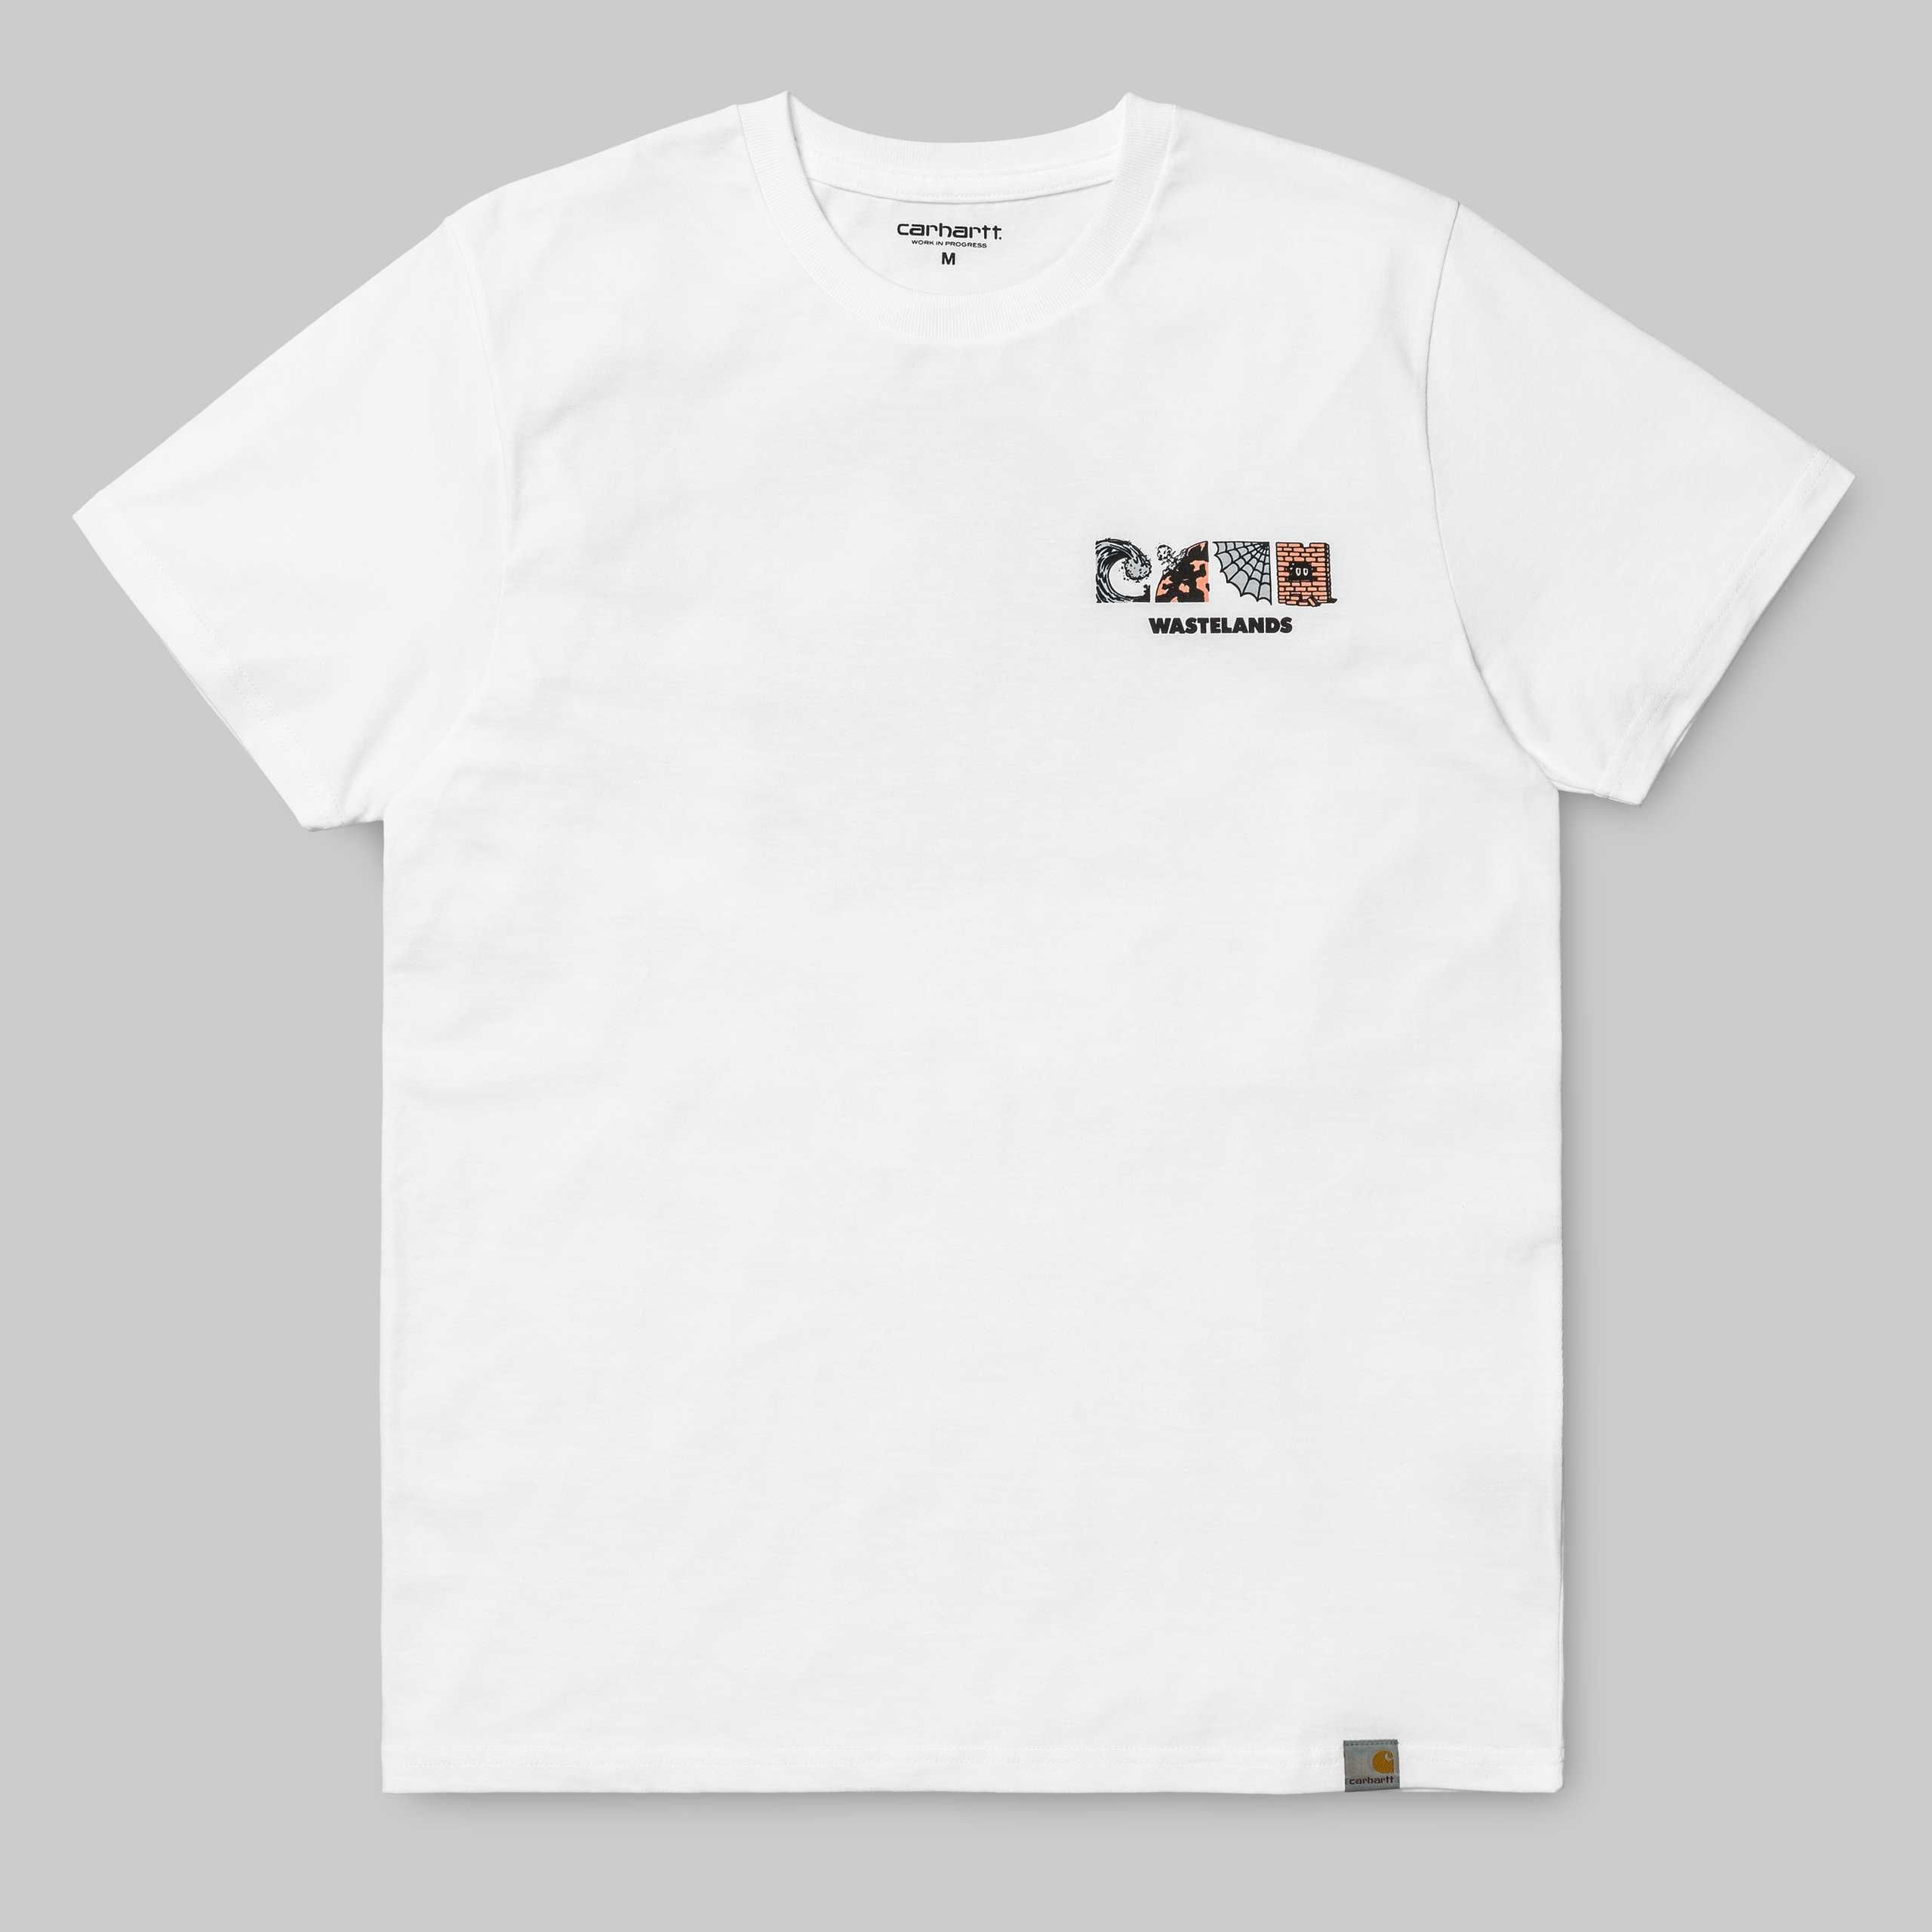 Shop the Carhartt WIP S/S Puzzle T-Shirt from the offical online store